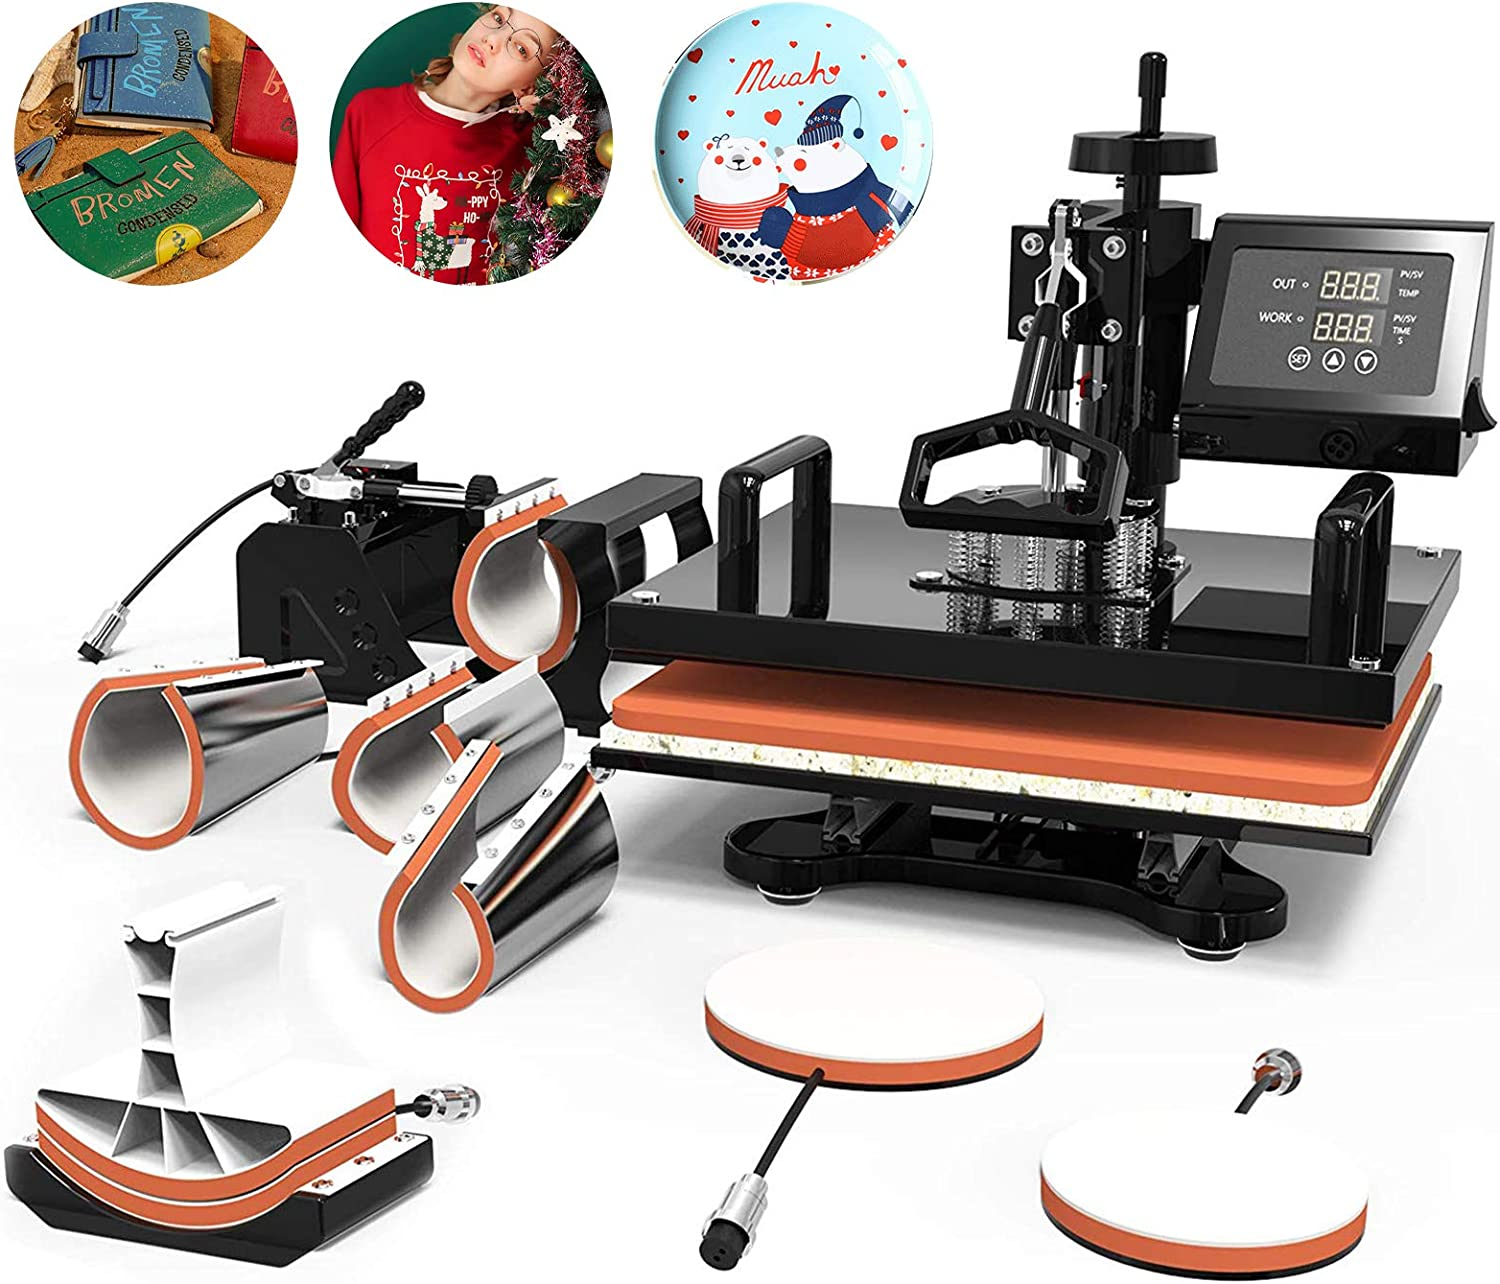 Heat Transfer Machine -SUNCOO 12x15 inches Swing-Away Digital 8 in 1 Heat Press Machine for T-Shirts Sublimation Hot Pressing Machine-Multipurpose Mug/Hat Plate/Cap Press,Combo Kit